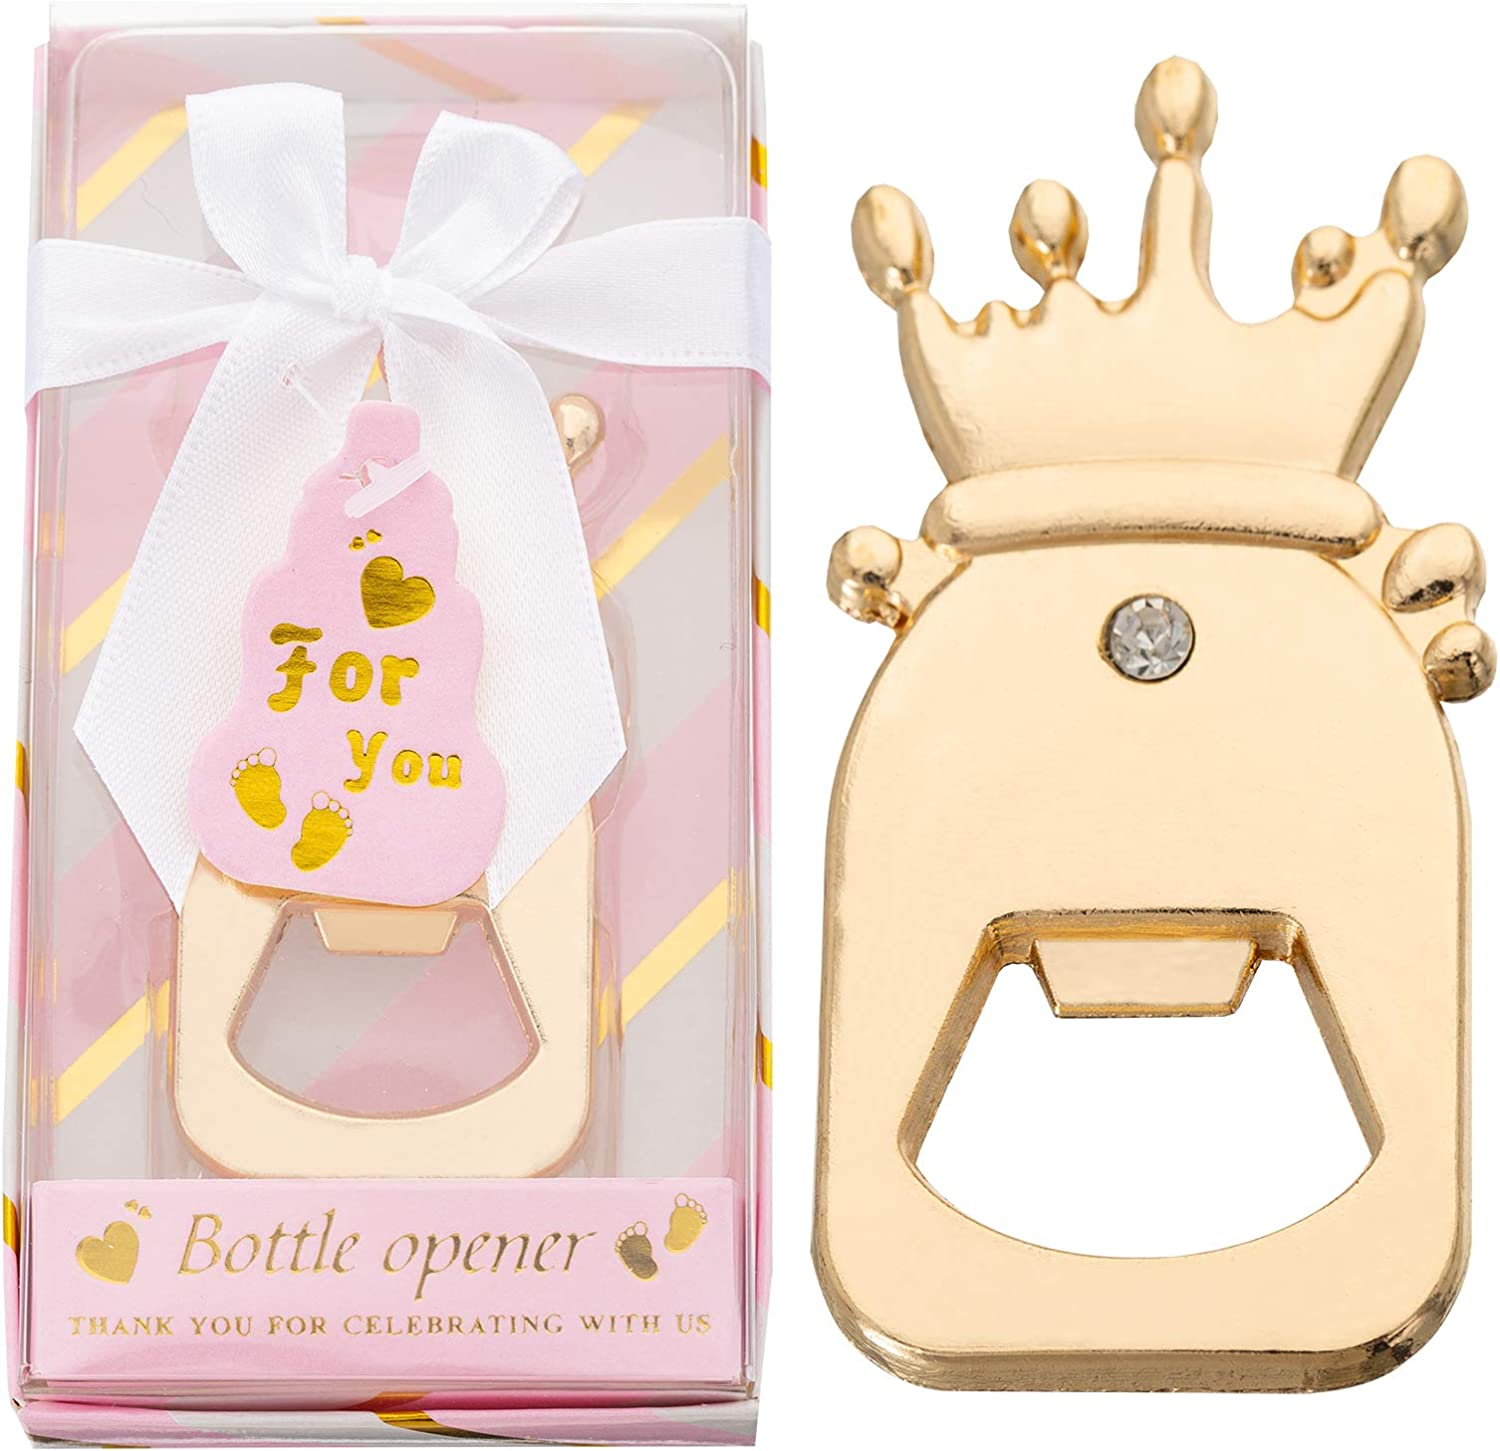 12PCS Crown Direct stock discount Shaped Baby Bottle Shower Sales Opener for Ba Favors